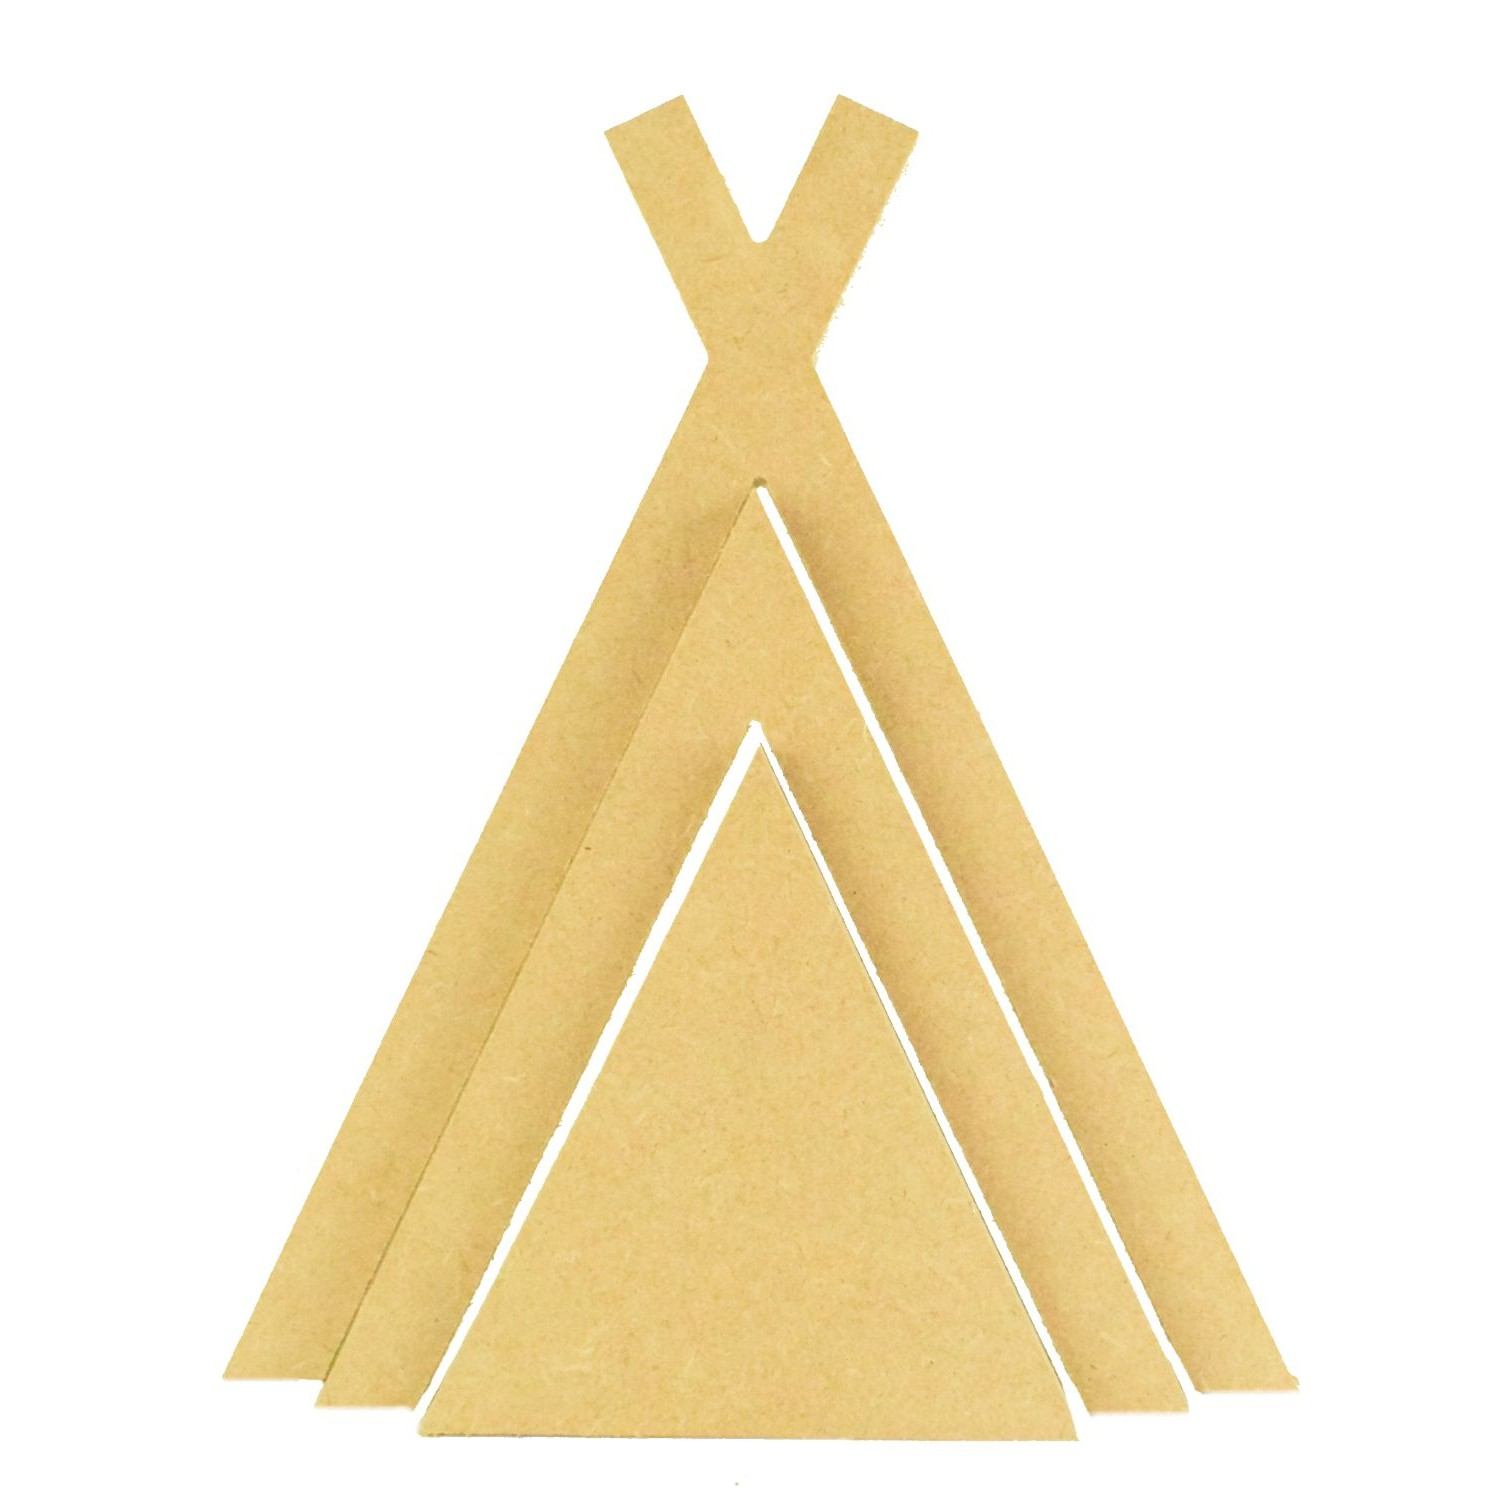 FREE STANDING MDF 3D TRIANGLE STACKER WOODEN CRAFT SHAPE